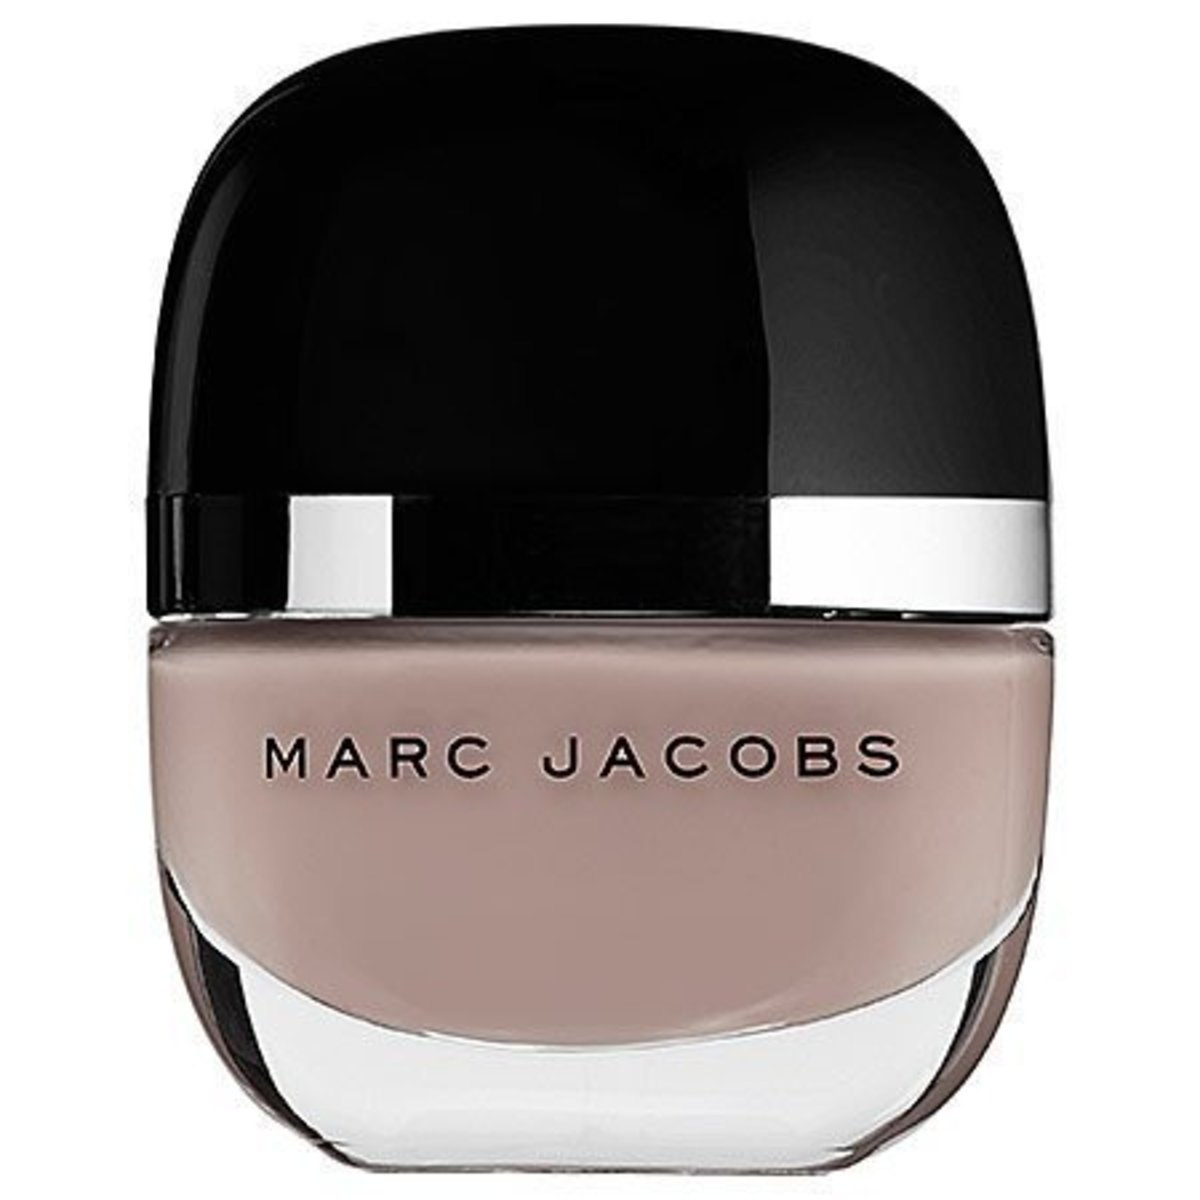 Marc Jacobs Opaque Light Ash Beige